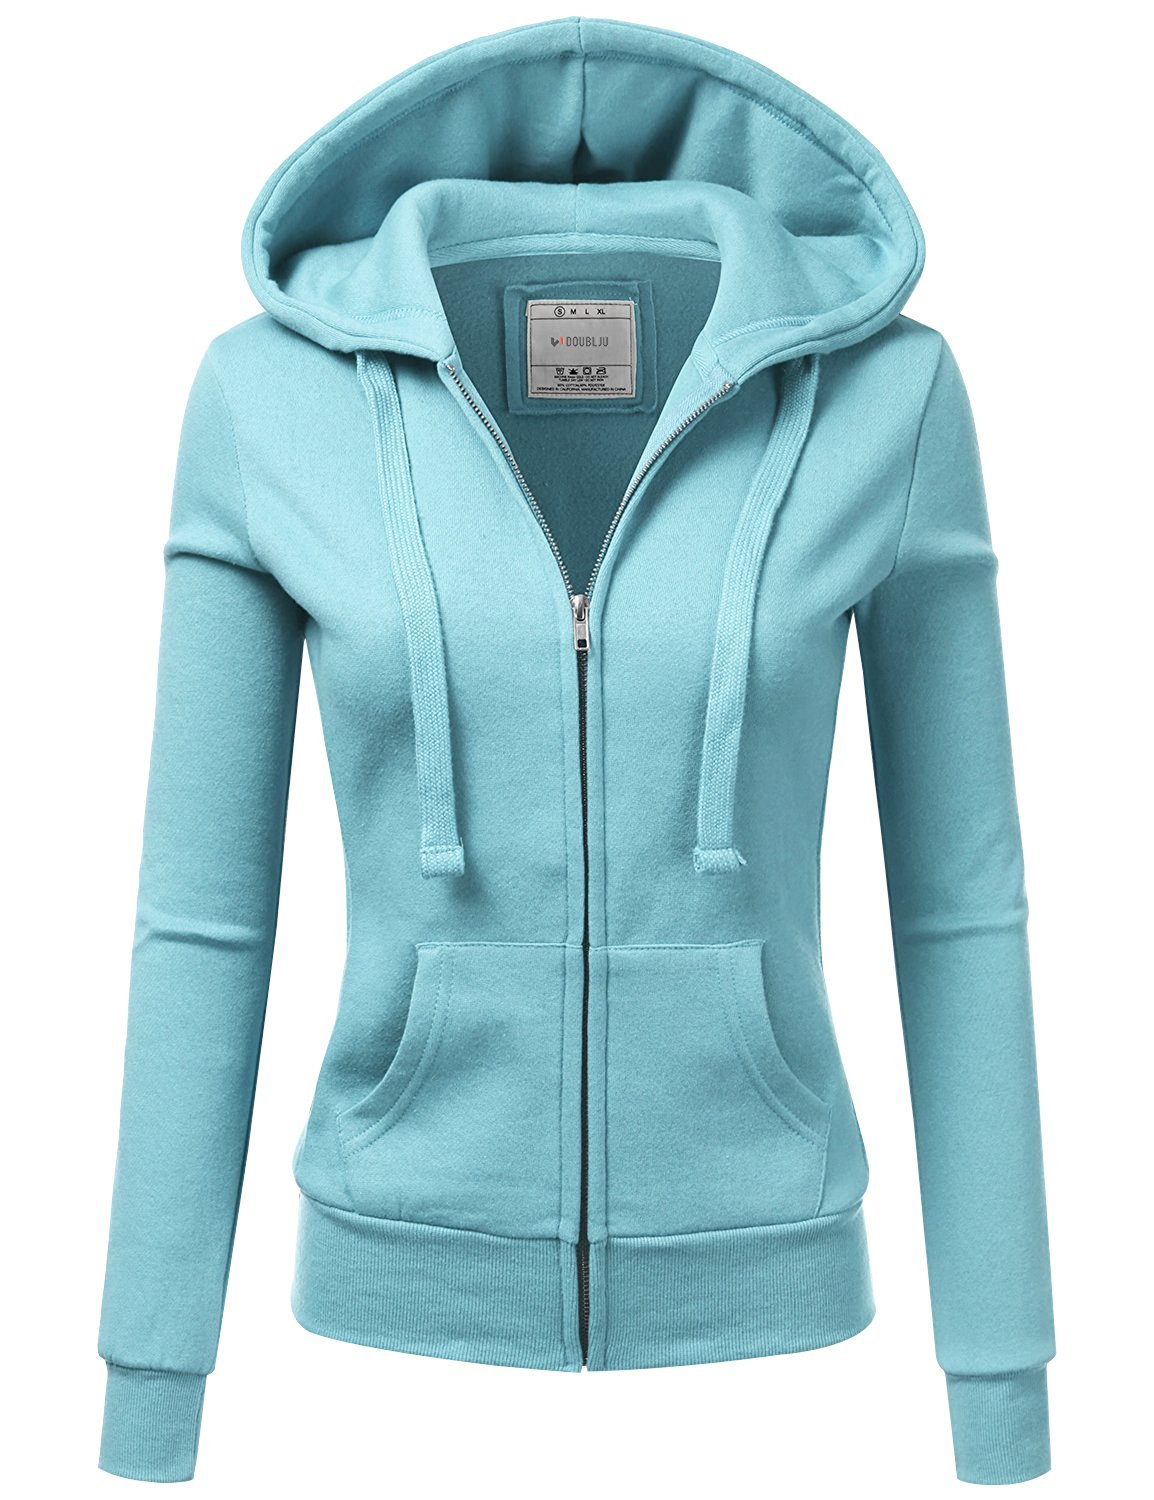 33c253d215b Get Quotations · Doublju Lightweight Thin Zip-up Hoodie Jacket for Women  with Plus Size